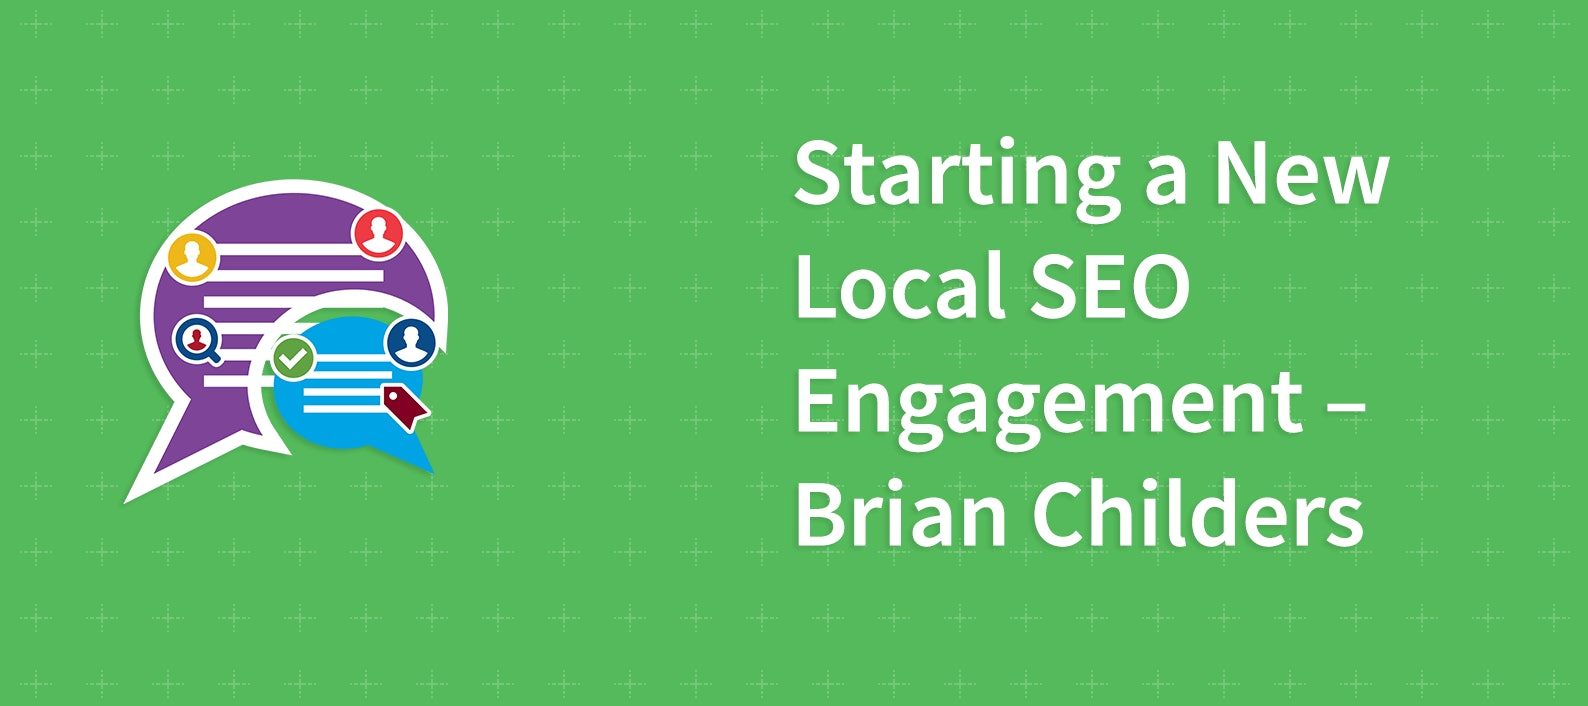 Starting a New Local SEO Engagement – Brian Childers